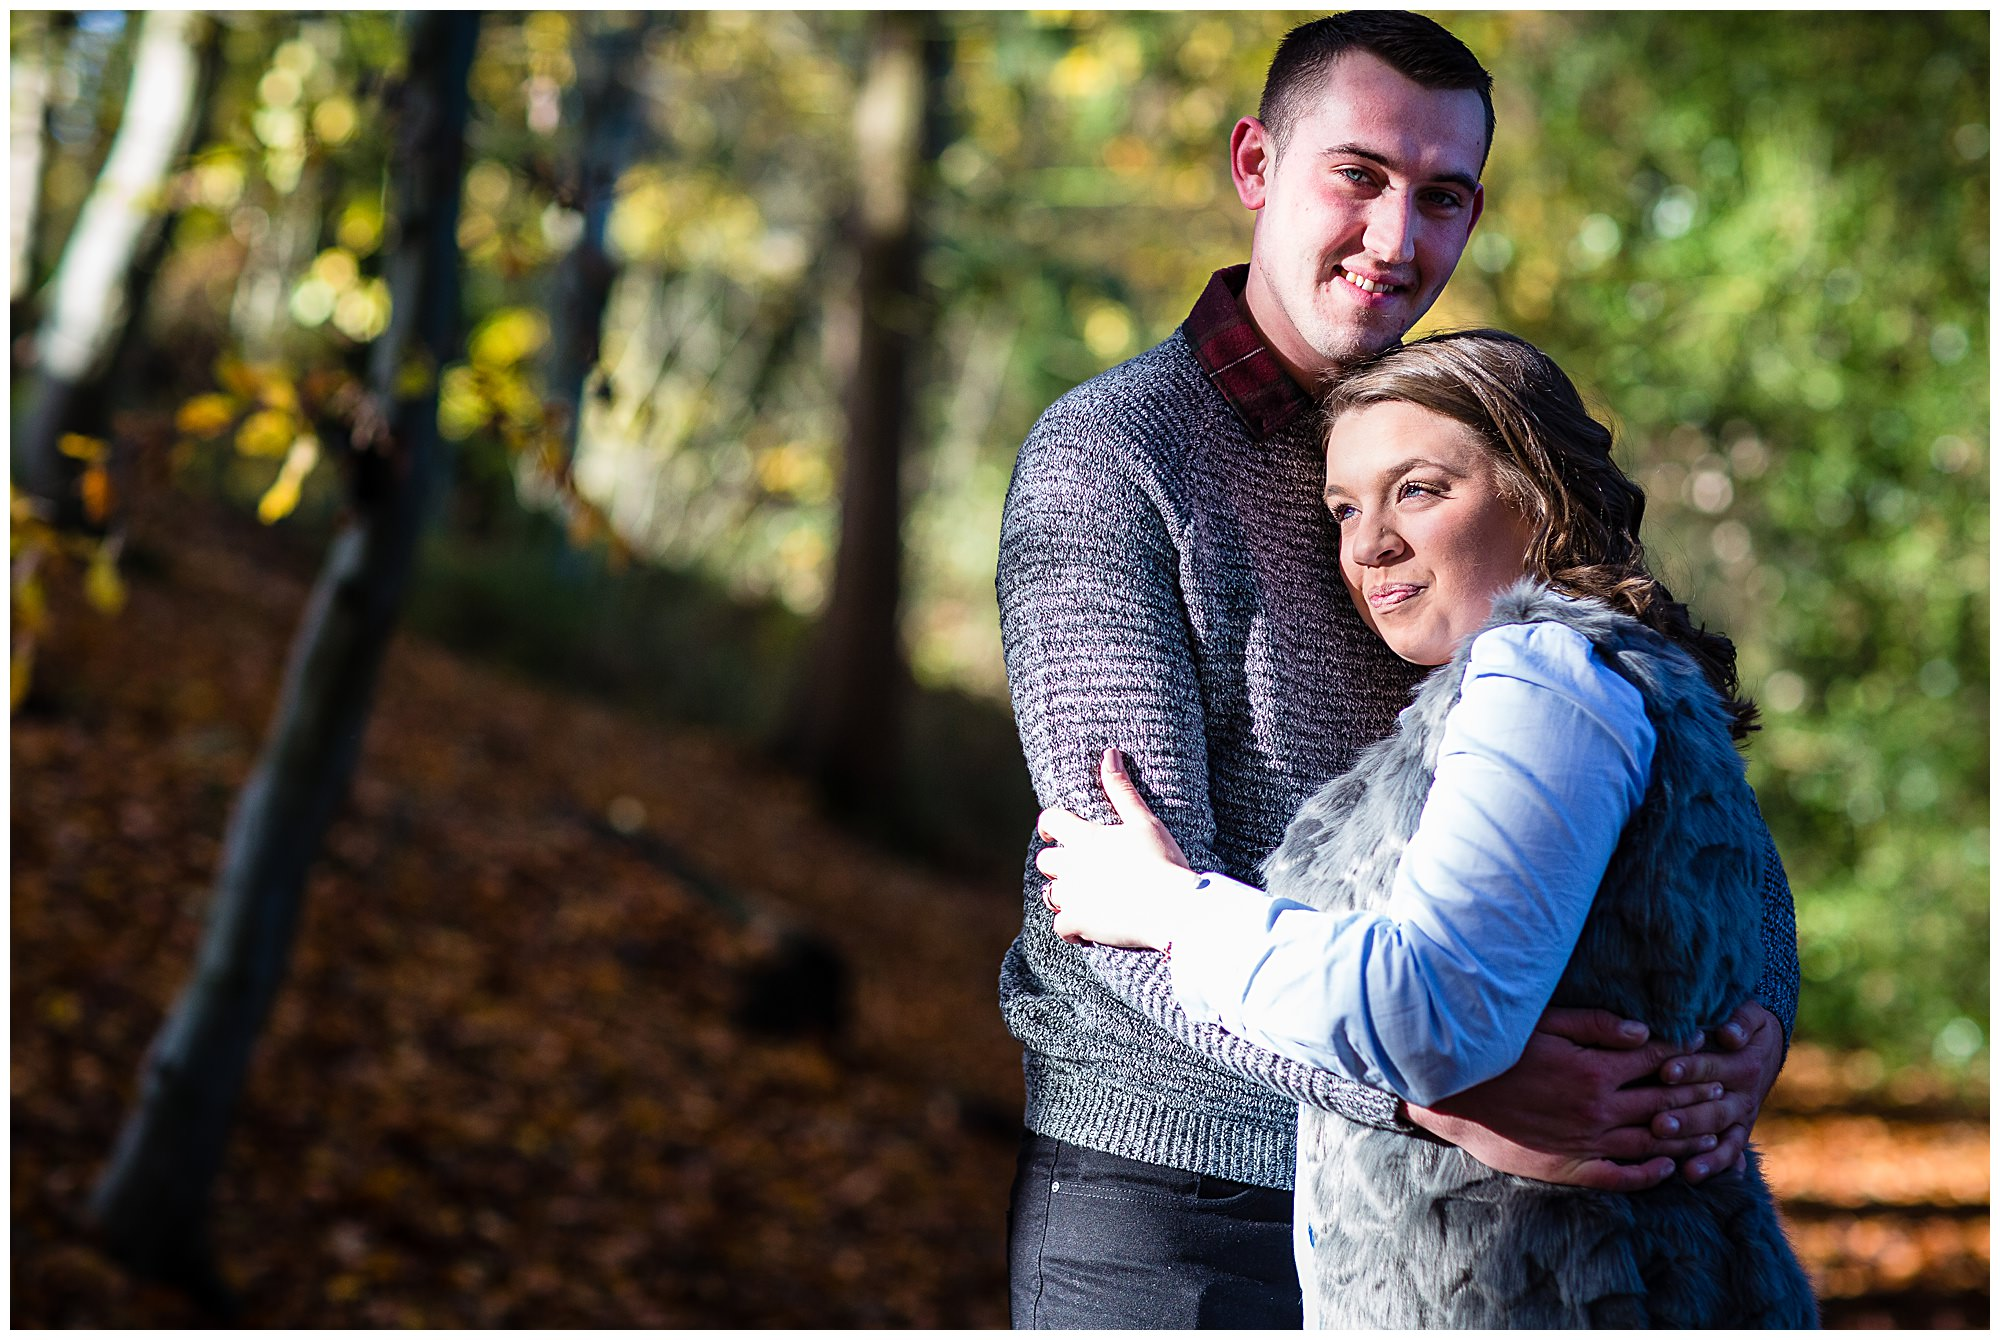 kirsty and luke cuddling while luke looks at the camera smitten - Shropshire Engagement Photographer